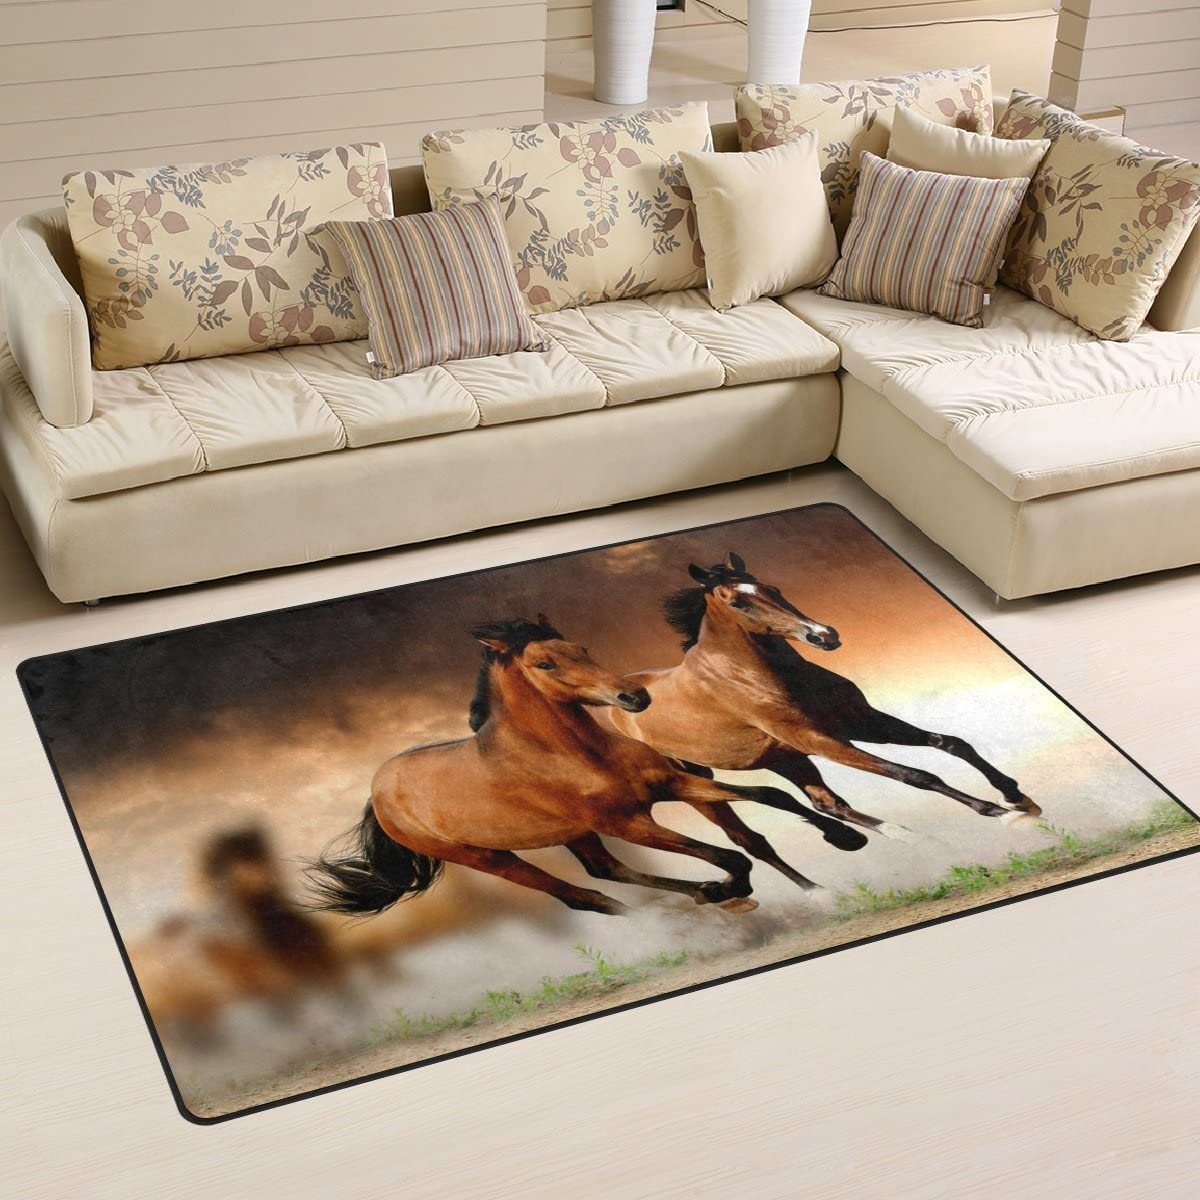 LORVIES Running Horses Area Rug Carpet Non-Slip Floor Mat Doormat